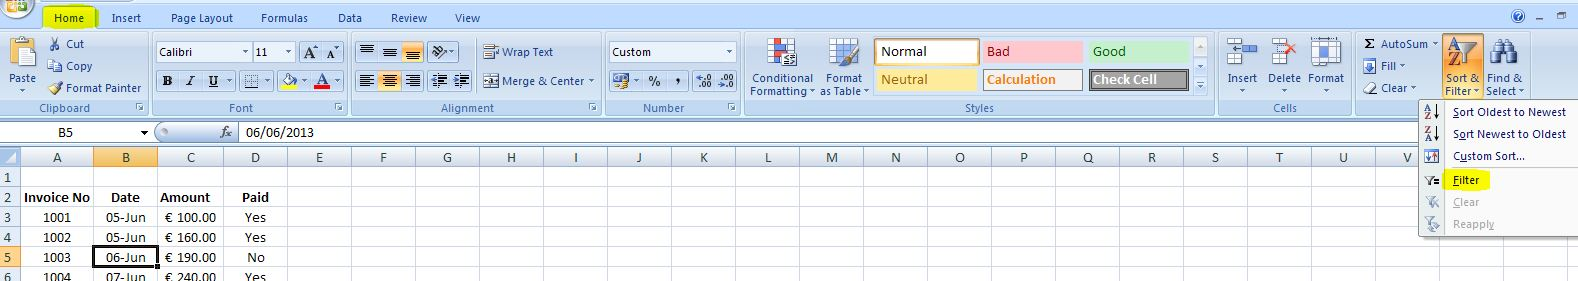 how to use autofilter in excel 2007